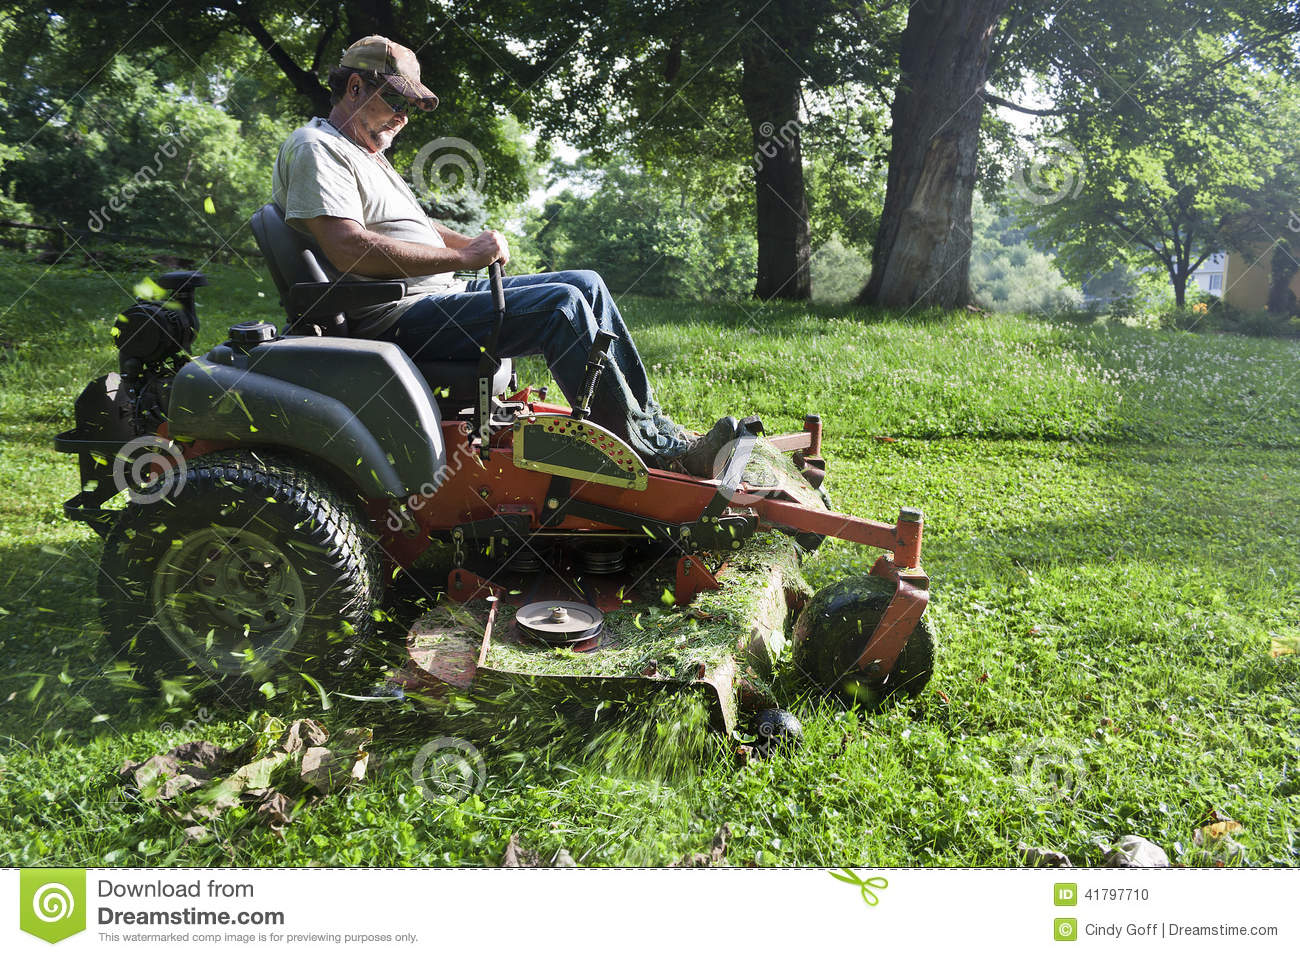 Landscaper on riding lawn mower stock photo image 41797710 for Lawn mower cutting grass